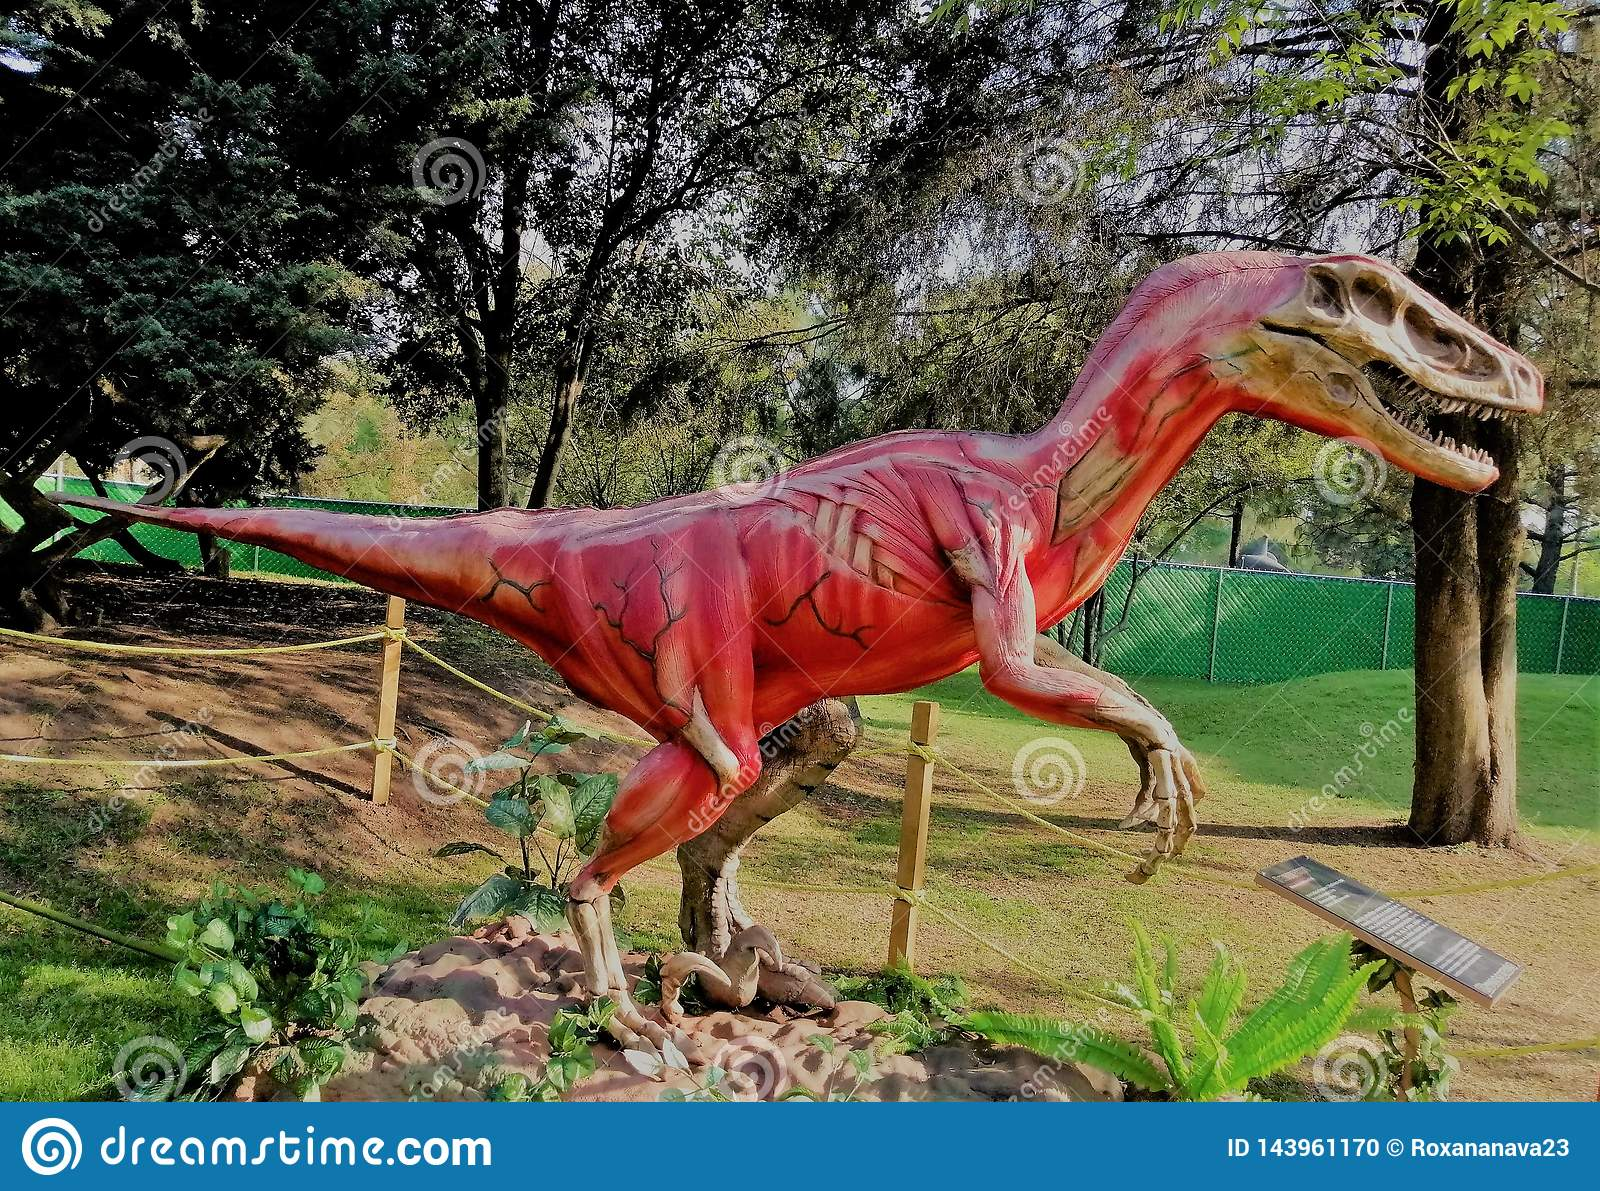 Tendons and muscles of dinosaur, he is fierce